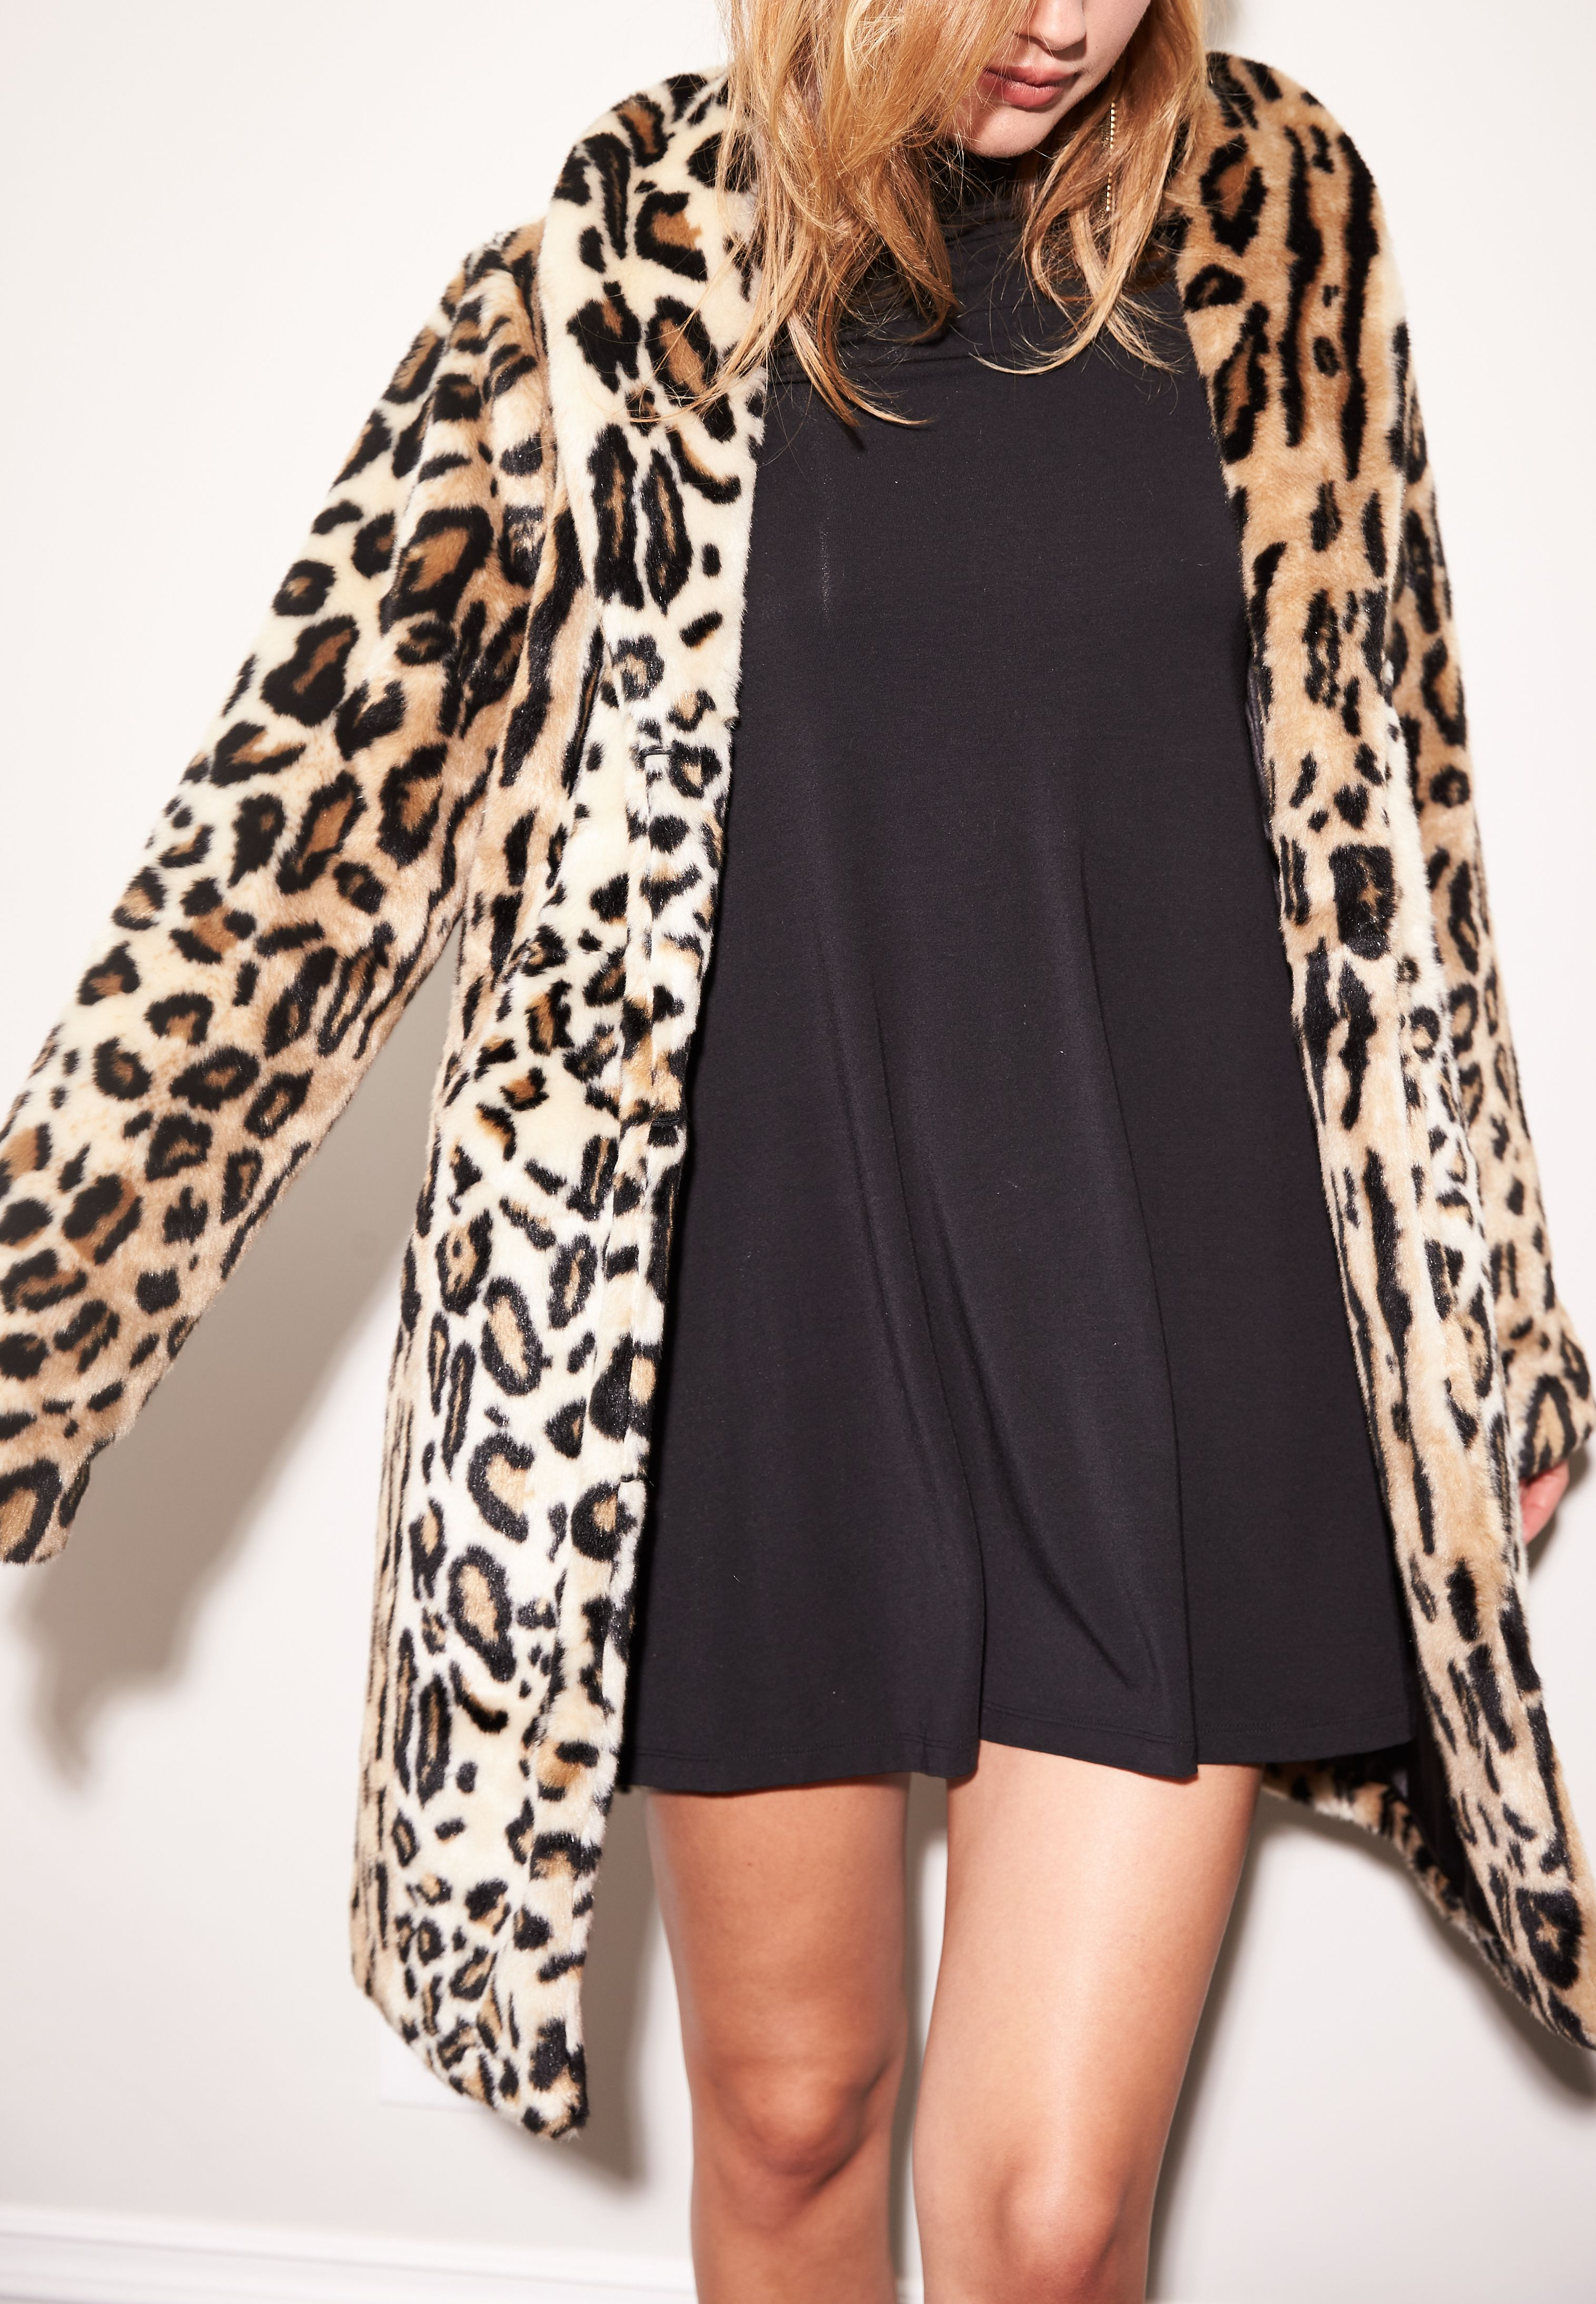 97302df07ebd Every fashionista needs her statement jacket! This luxurious faux fur  leopard print coat is a MUST this season. Model wears a size x-small. Faux  Fur.